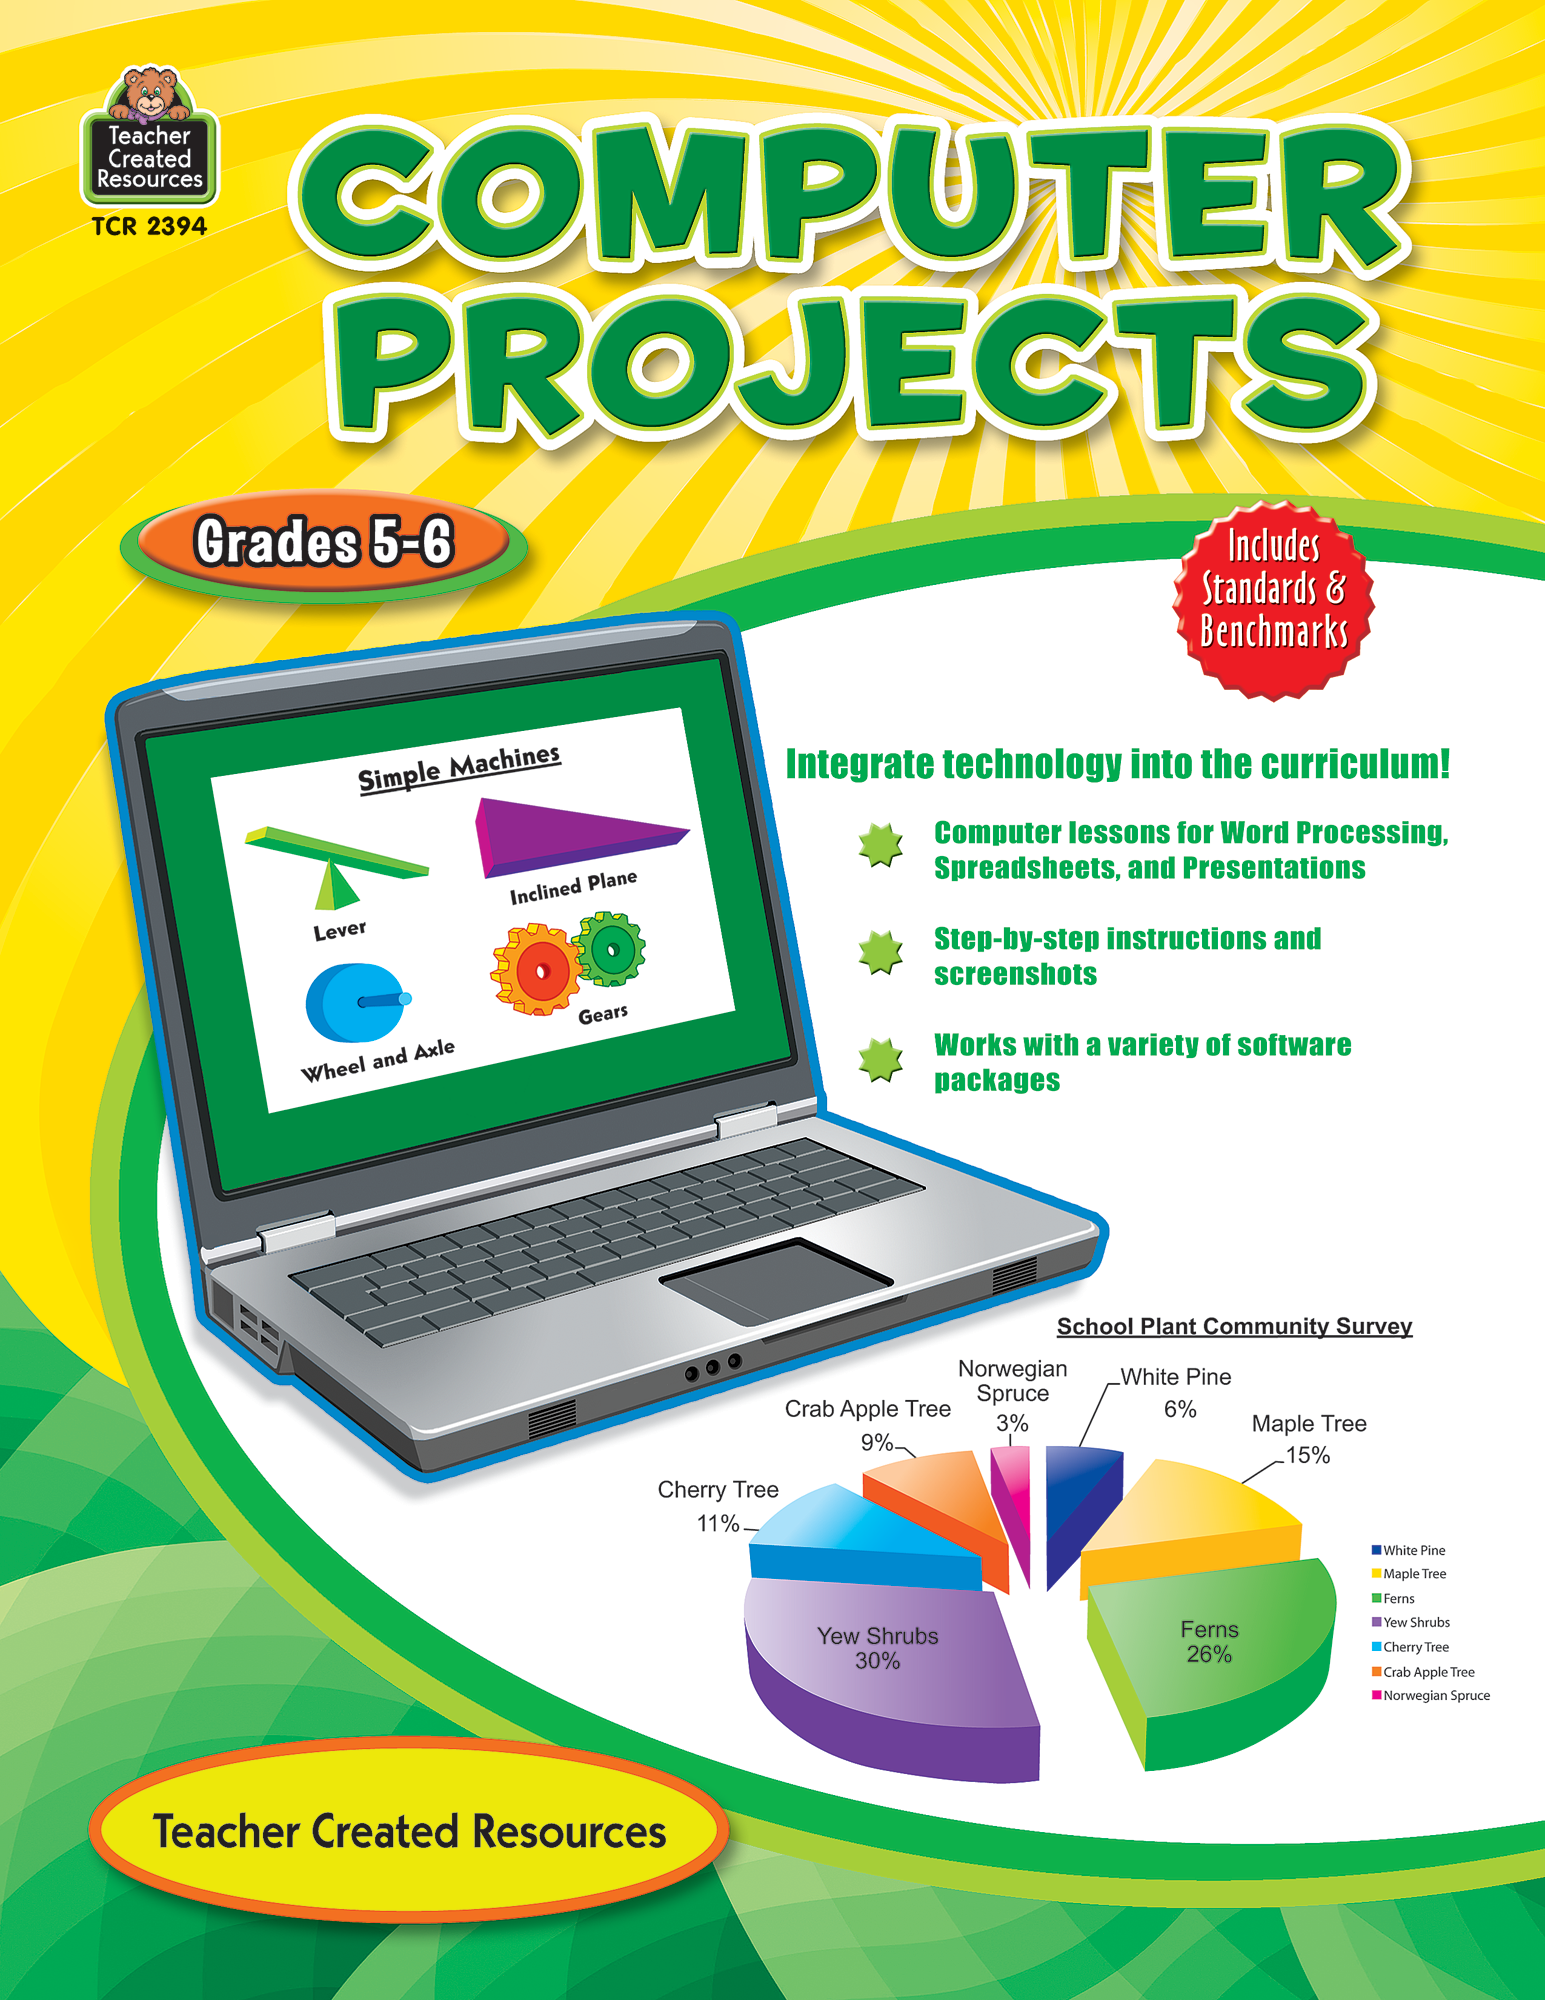 computer projects Huge list of computer science fair projects ideas, computer projects cbse gcse, computer programming c++ language project ideas, topics for cbse school, computer expo experiments, exhibition science projects for kids and also for middle school, elementary school for class 5th grade, 6th, 7th, 8th, 9th 10th, 11th, 12th grade and high school, msc.